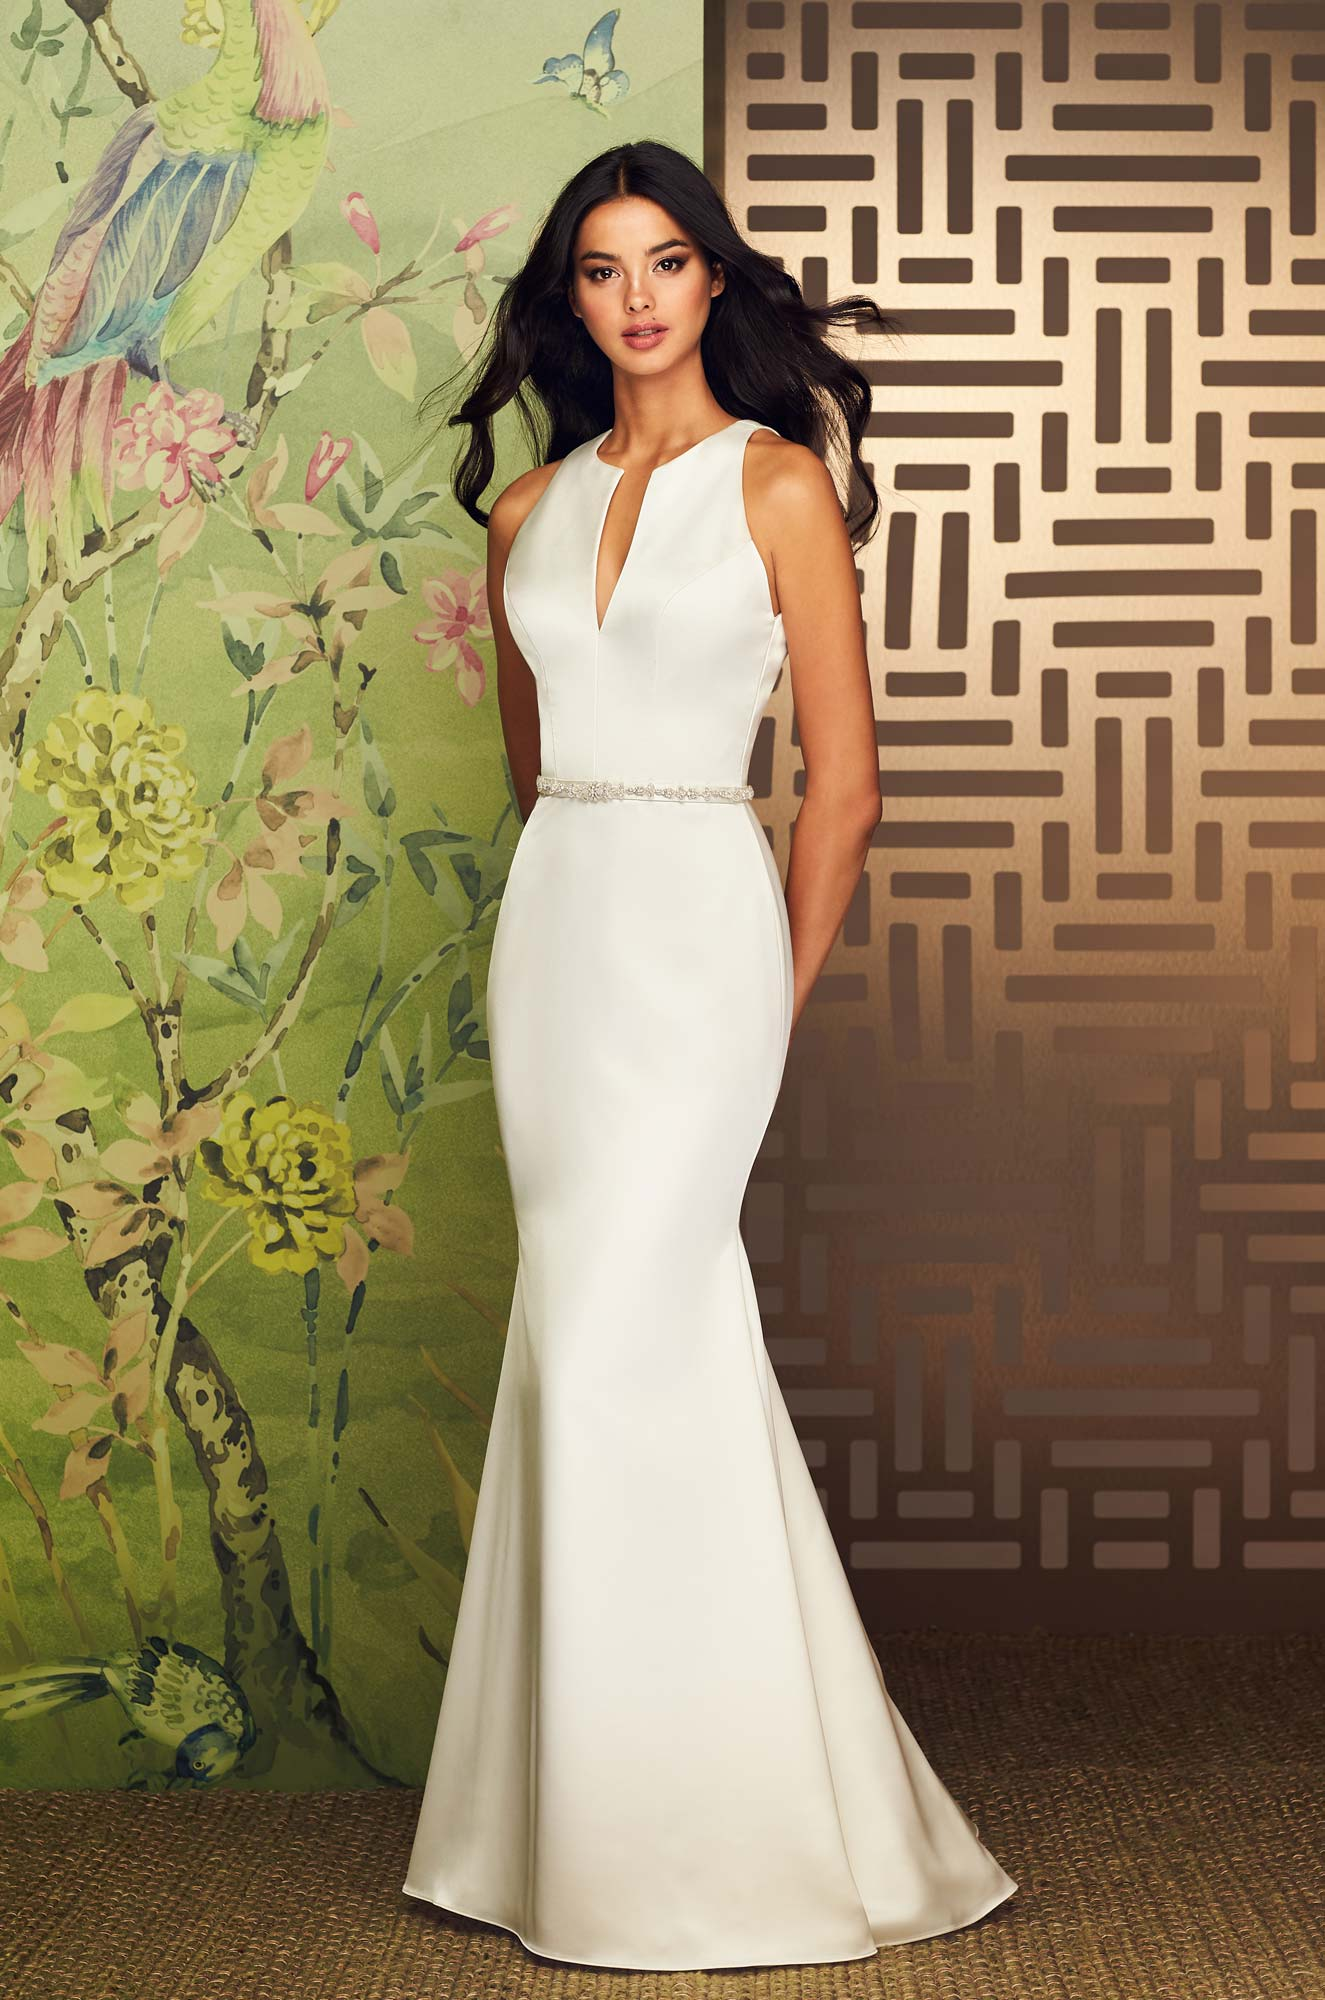 Sophisticated Two Piece Wedding Dress - Style #4889 | Paloma Blanca